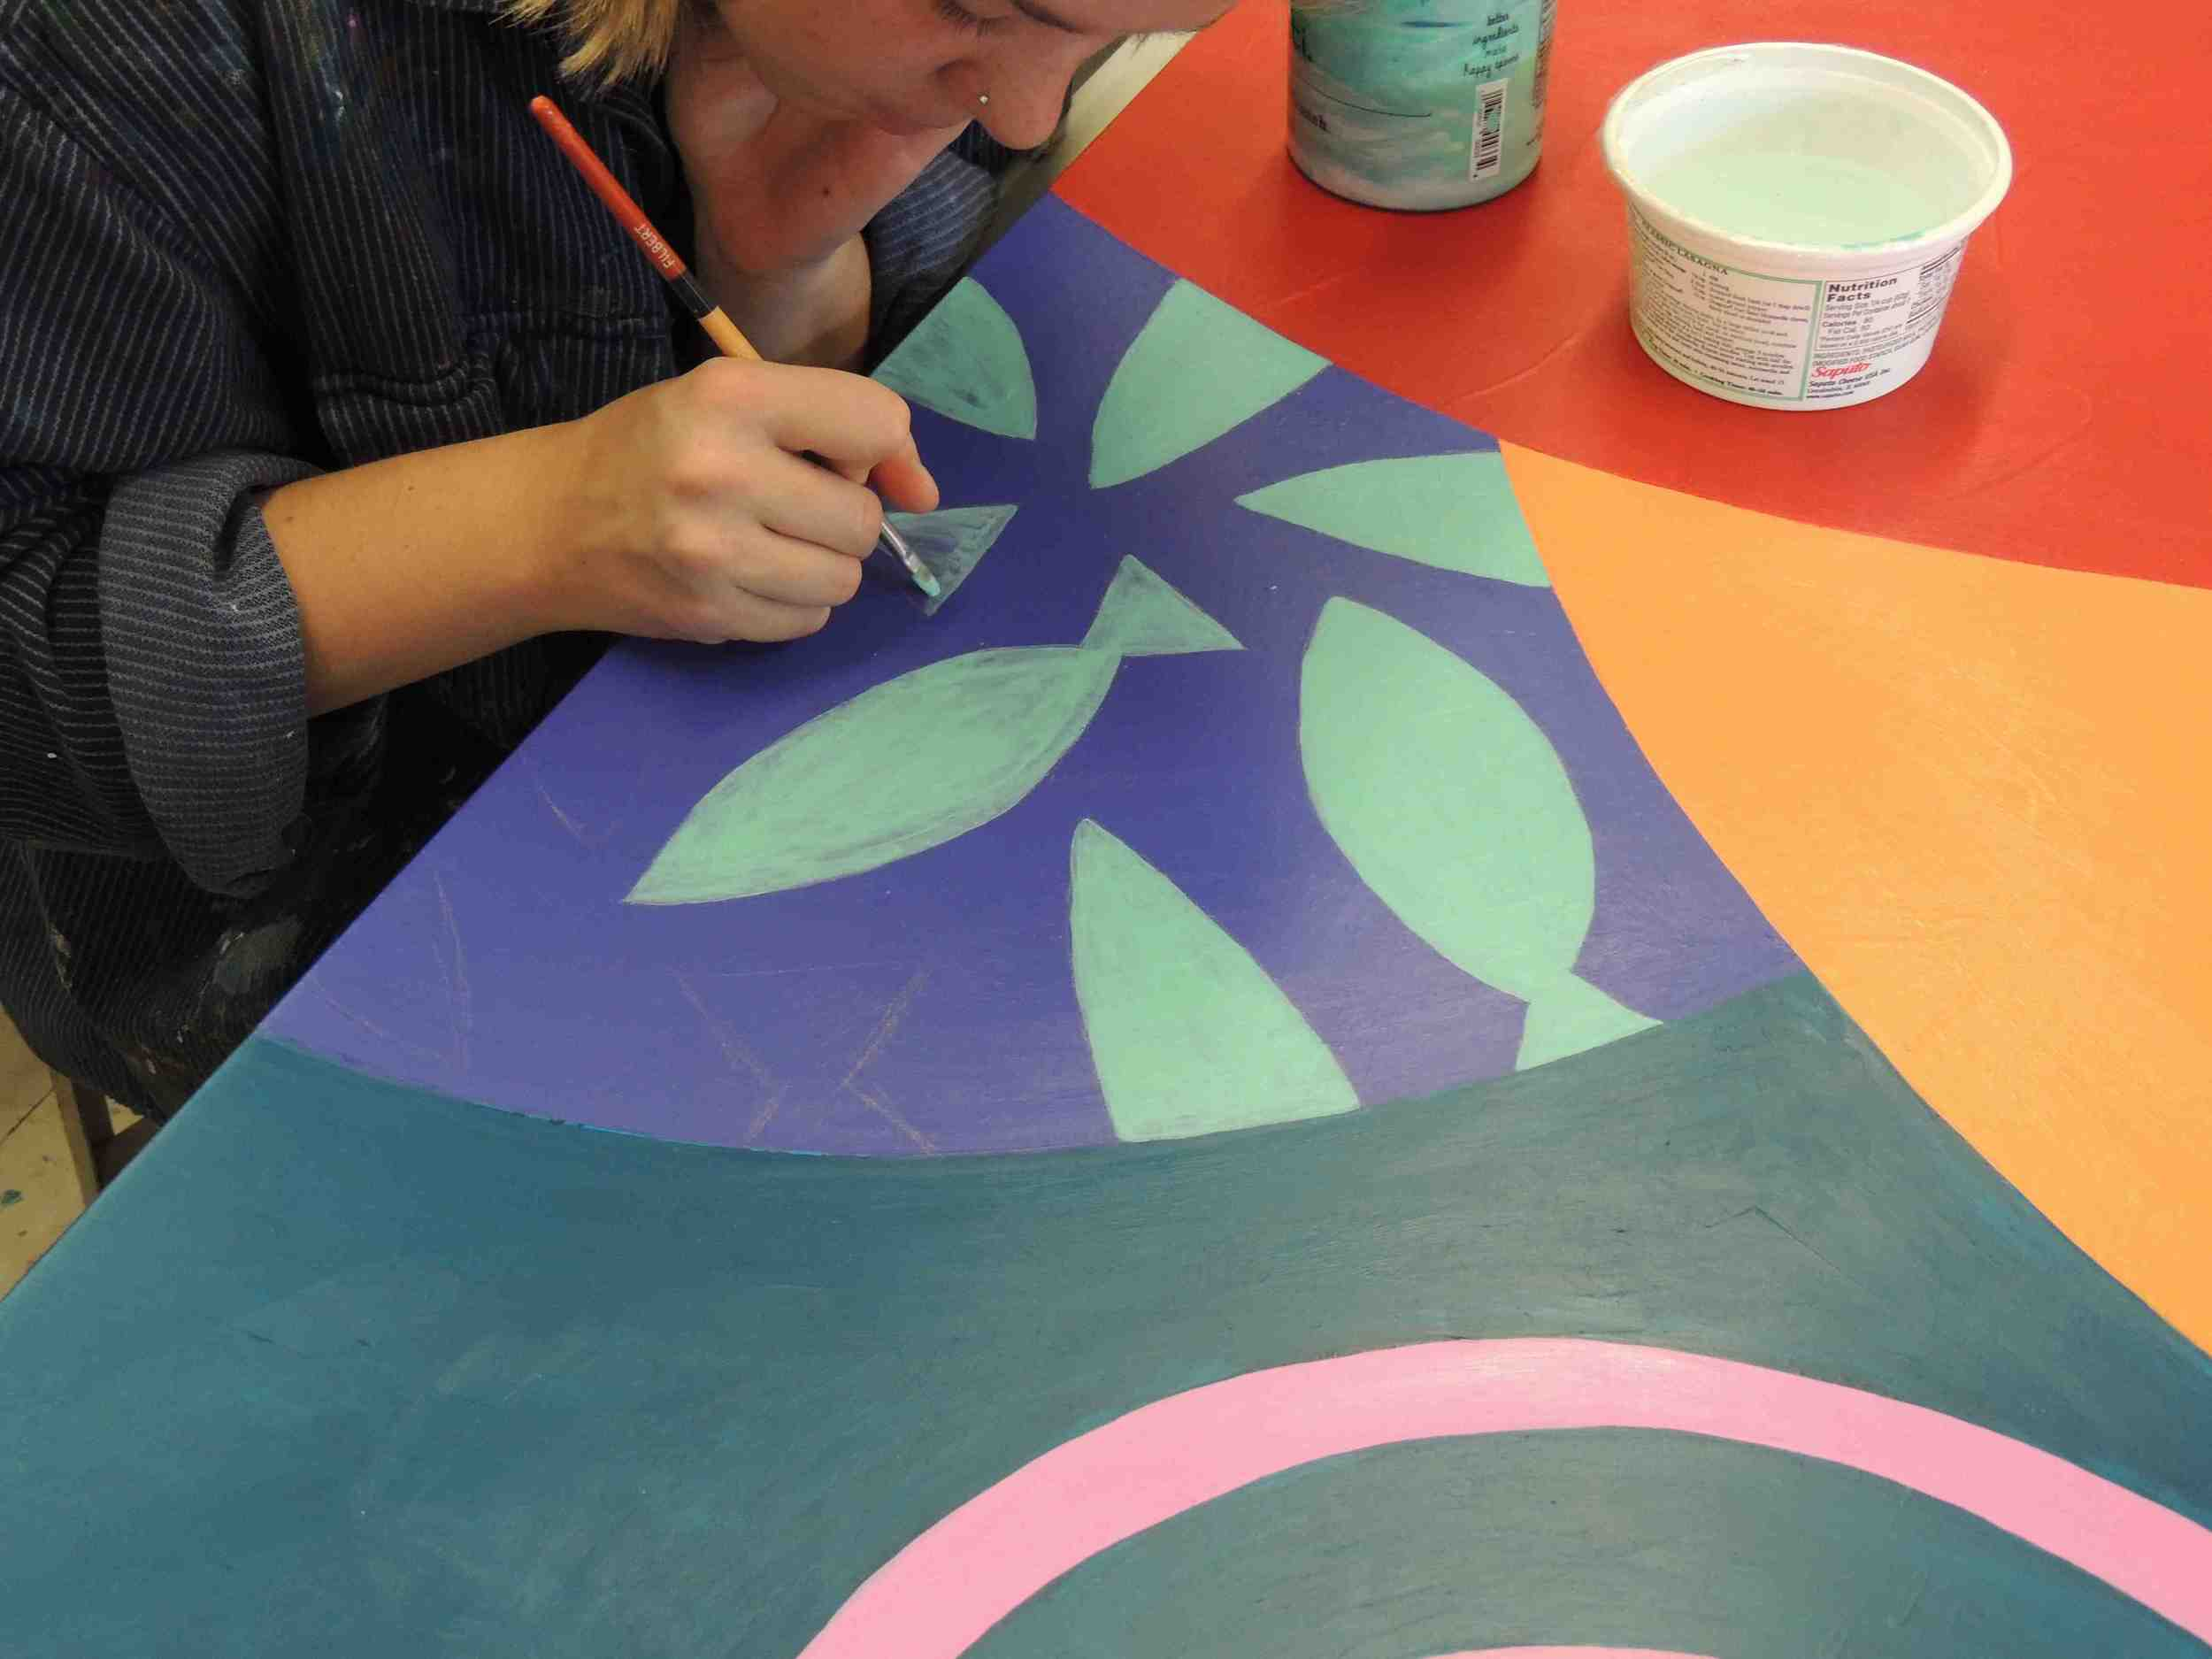 Carla Hauck applies the first coat of paint to a green school of fish.